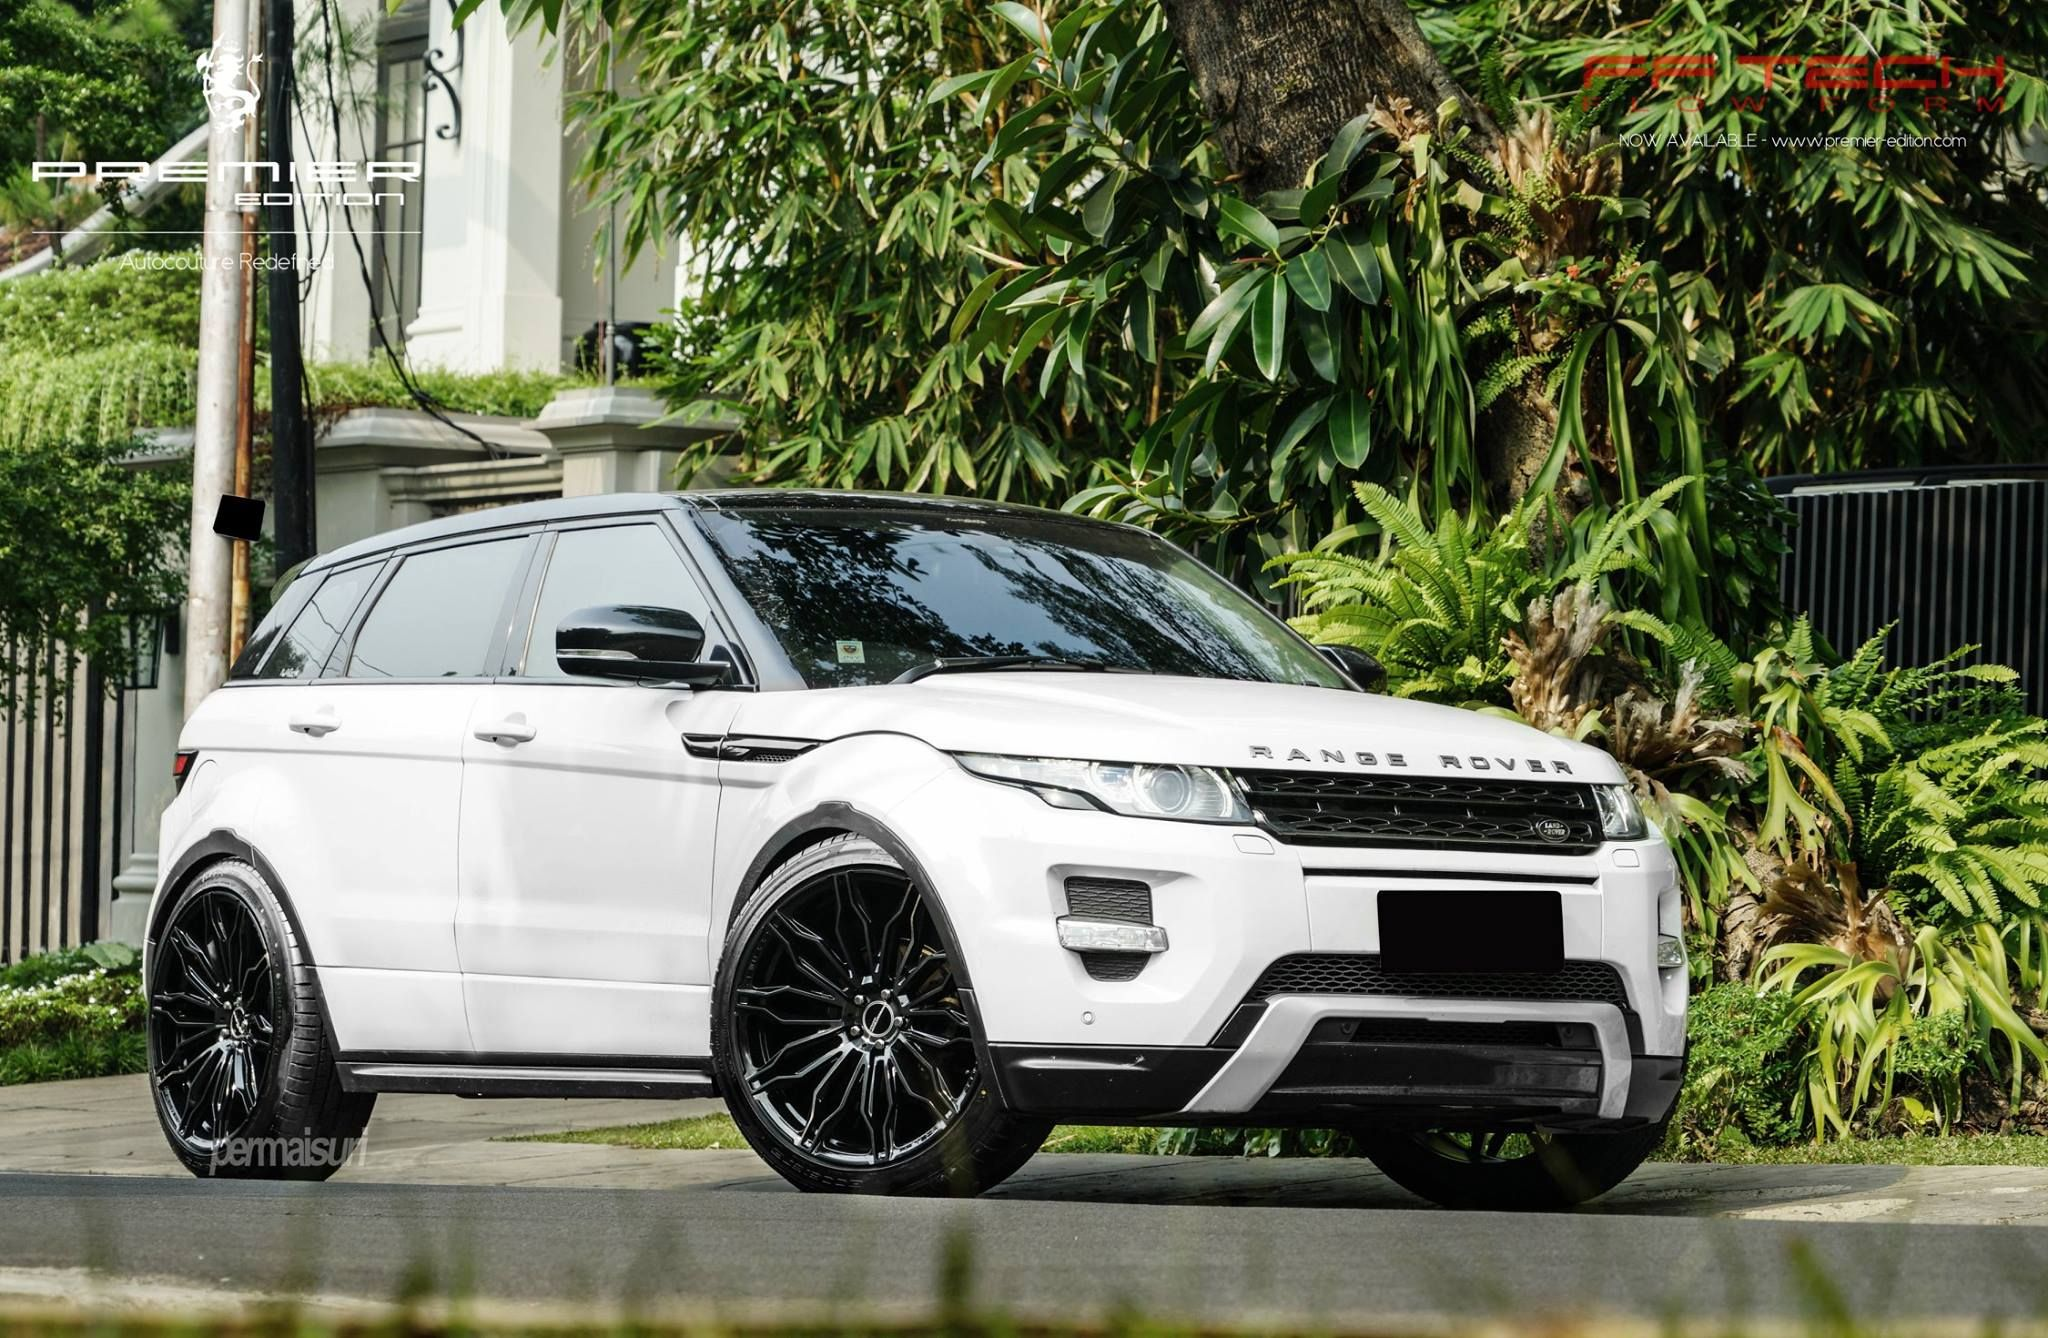 37 Evoque Wheels And Accessories Ideas Wheel Accessories Pure Products Range Rover Evoque